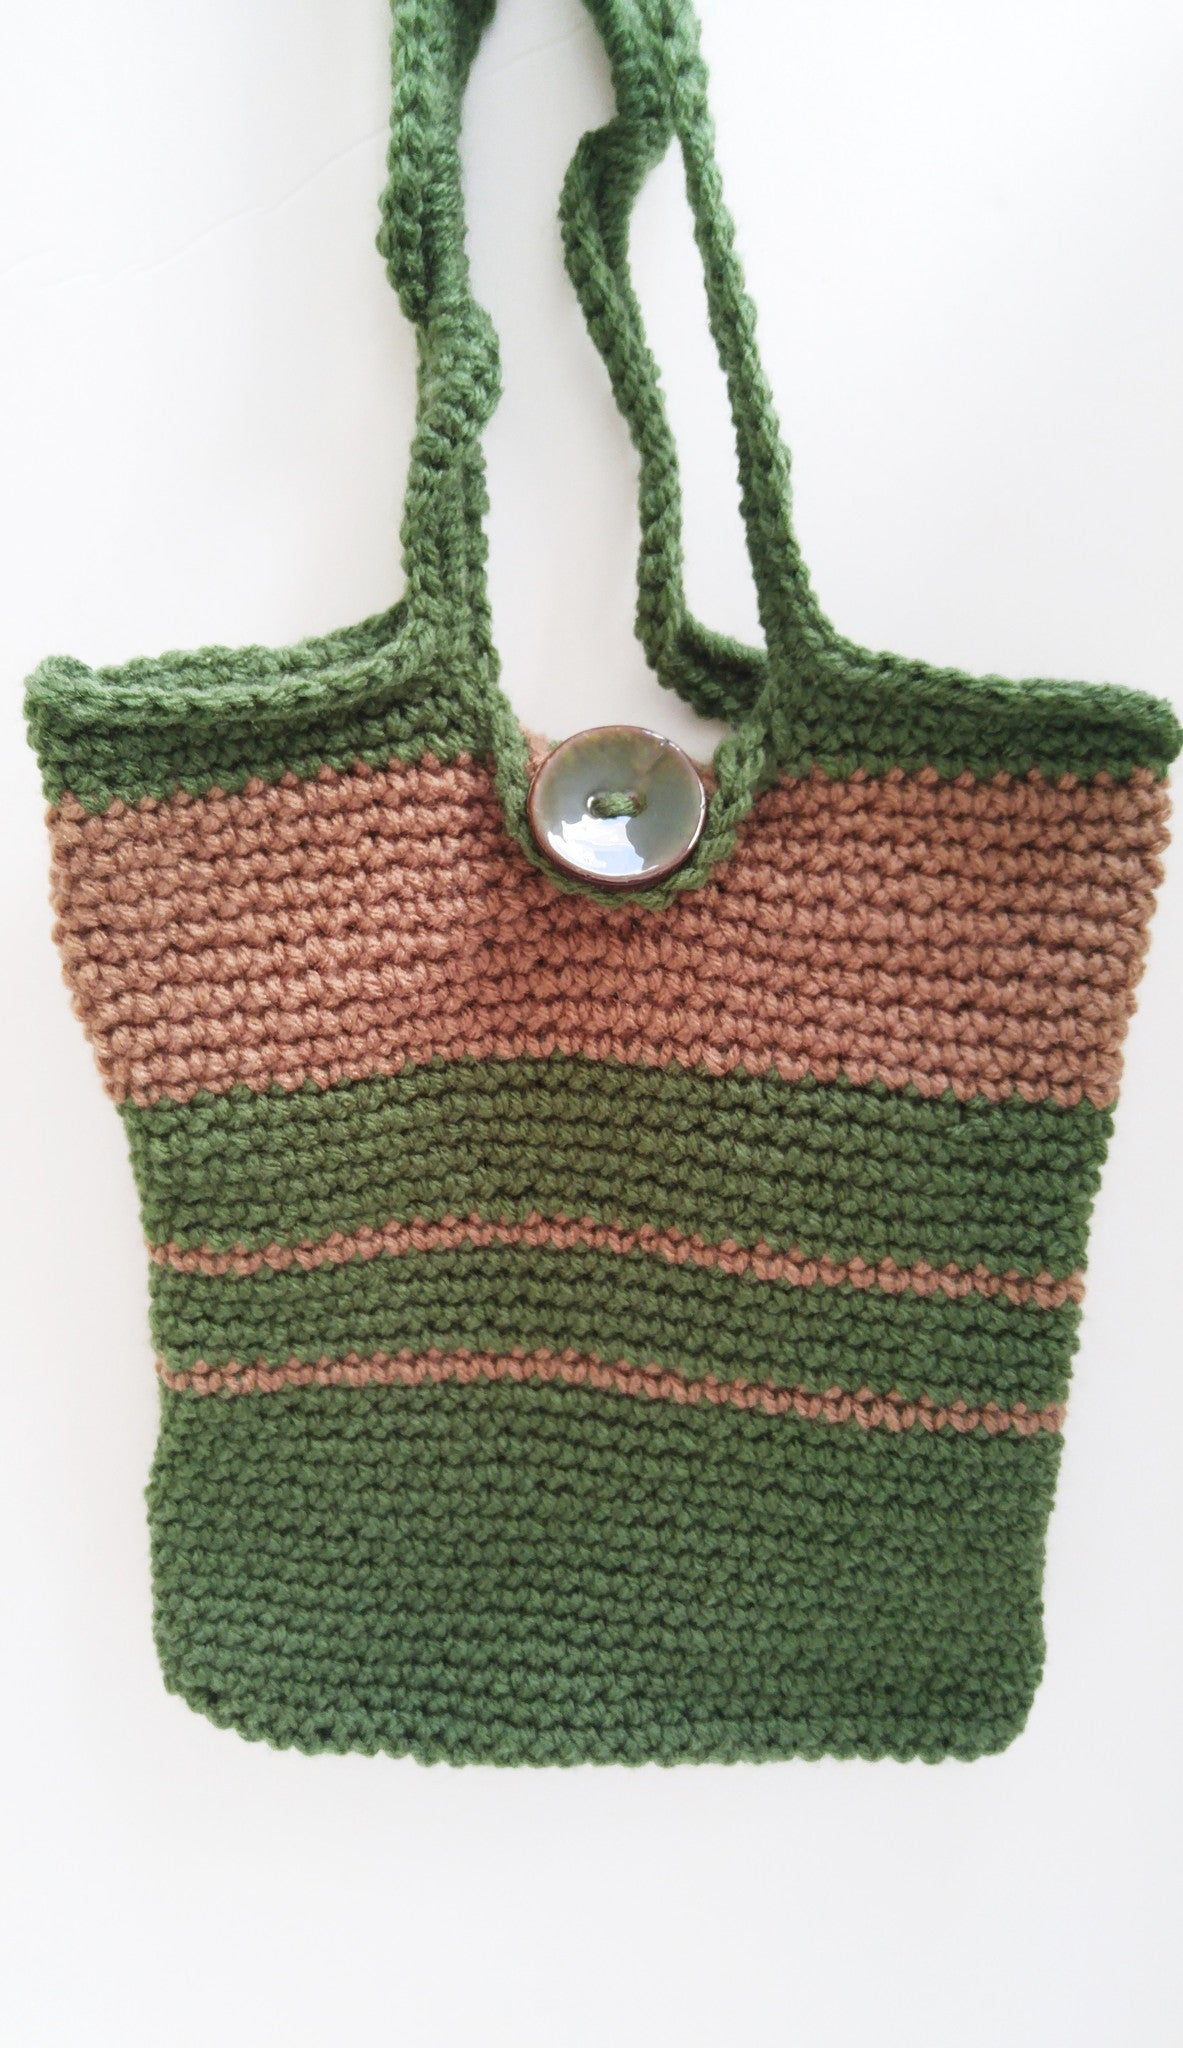 Green and Brown Handbag